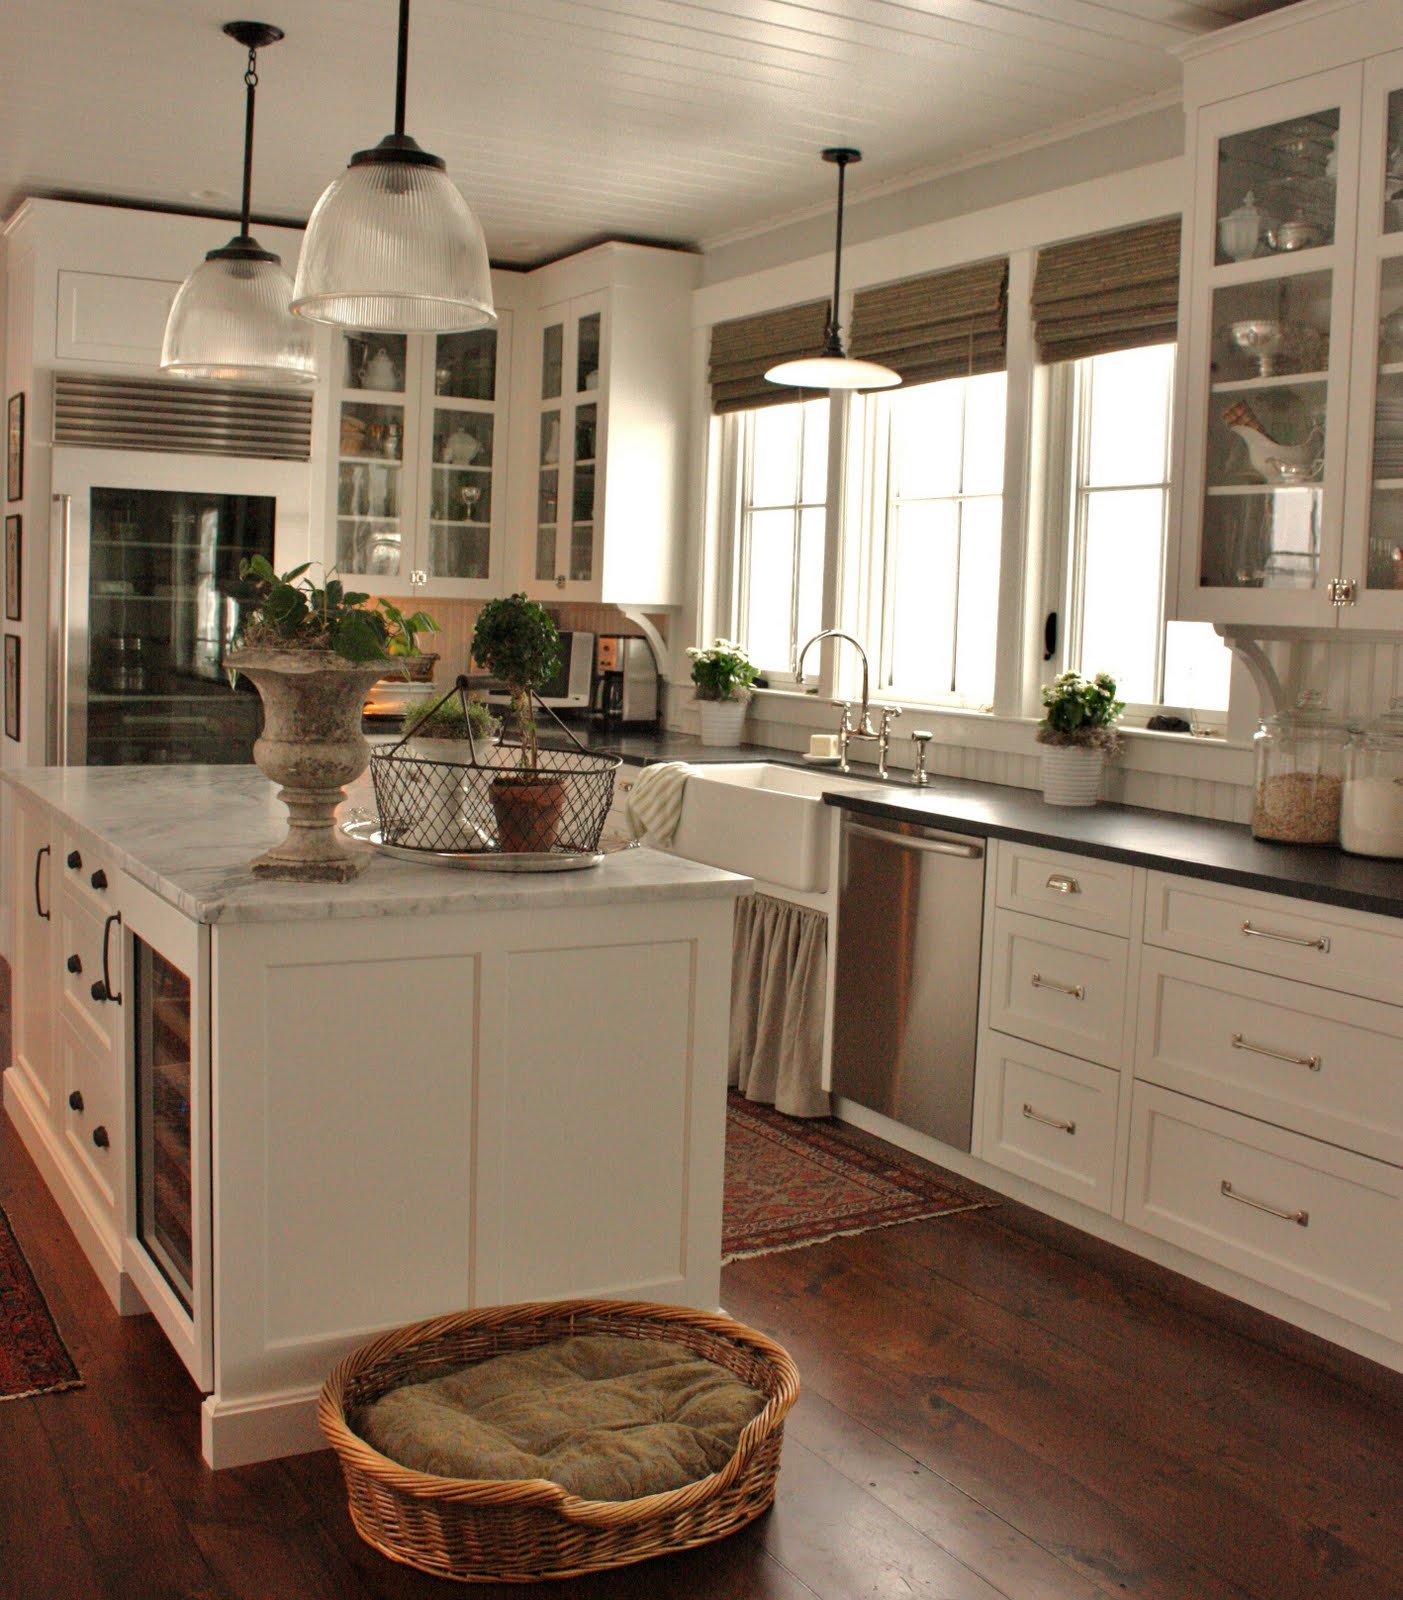 Antiqueaholics: MY DREAM KITCHEN